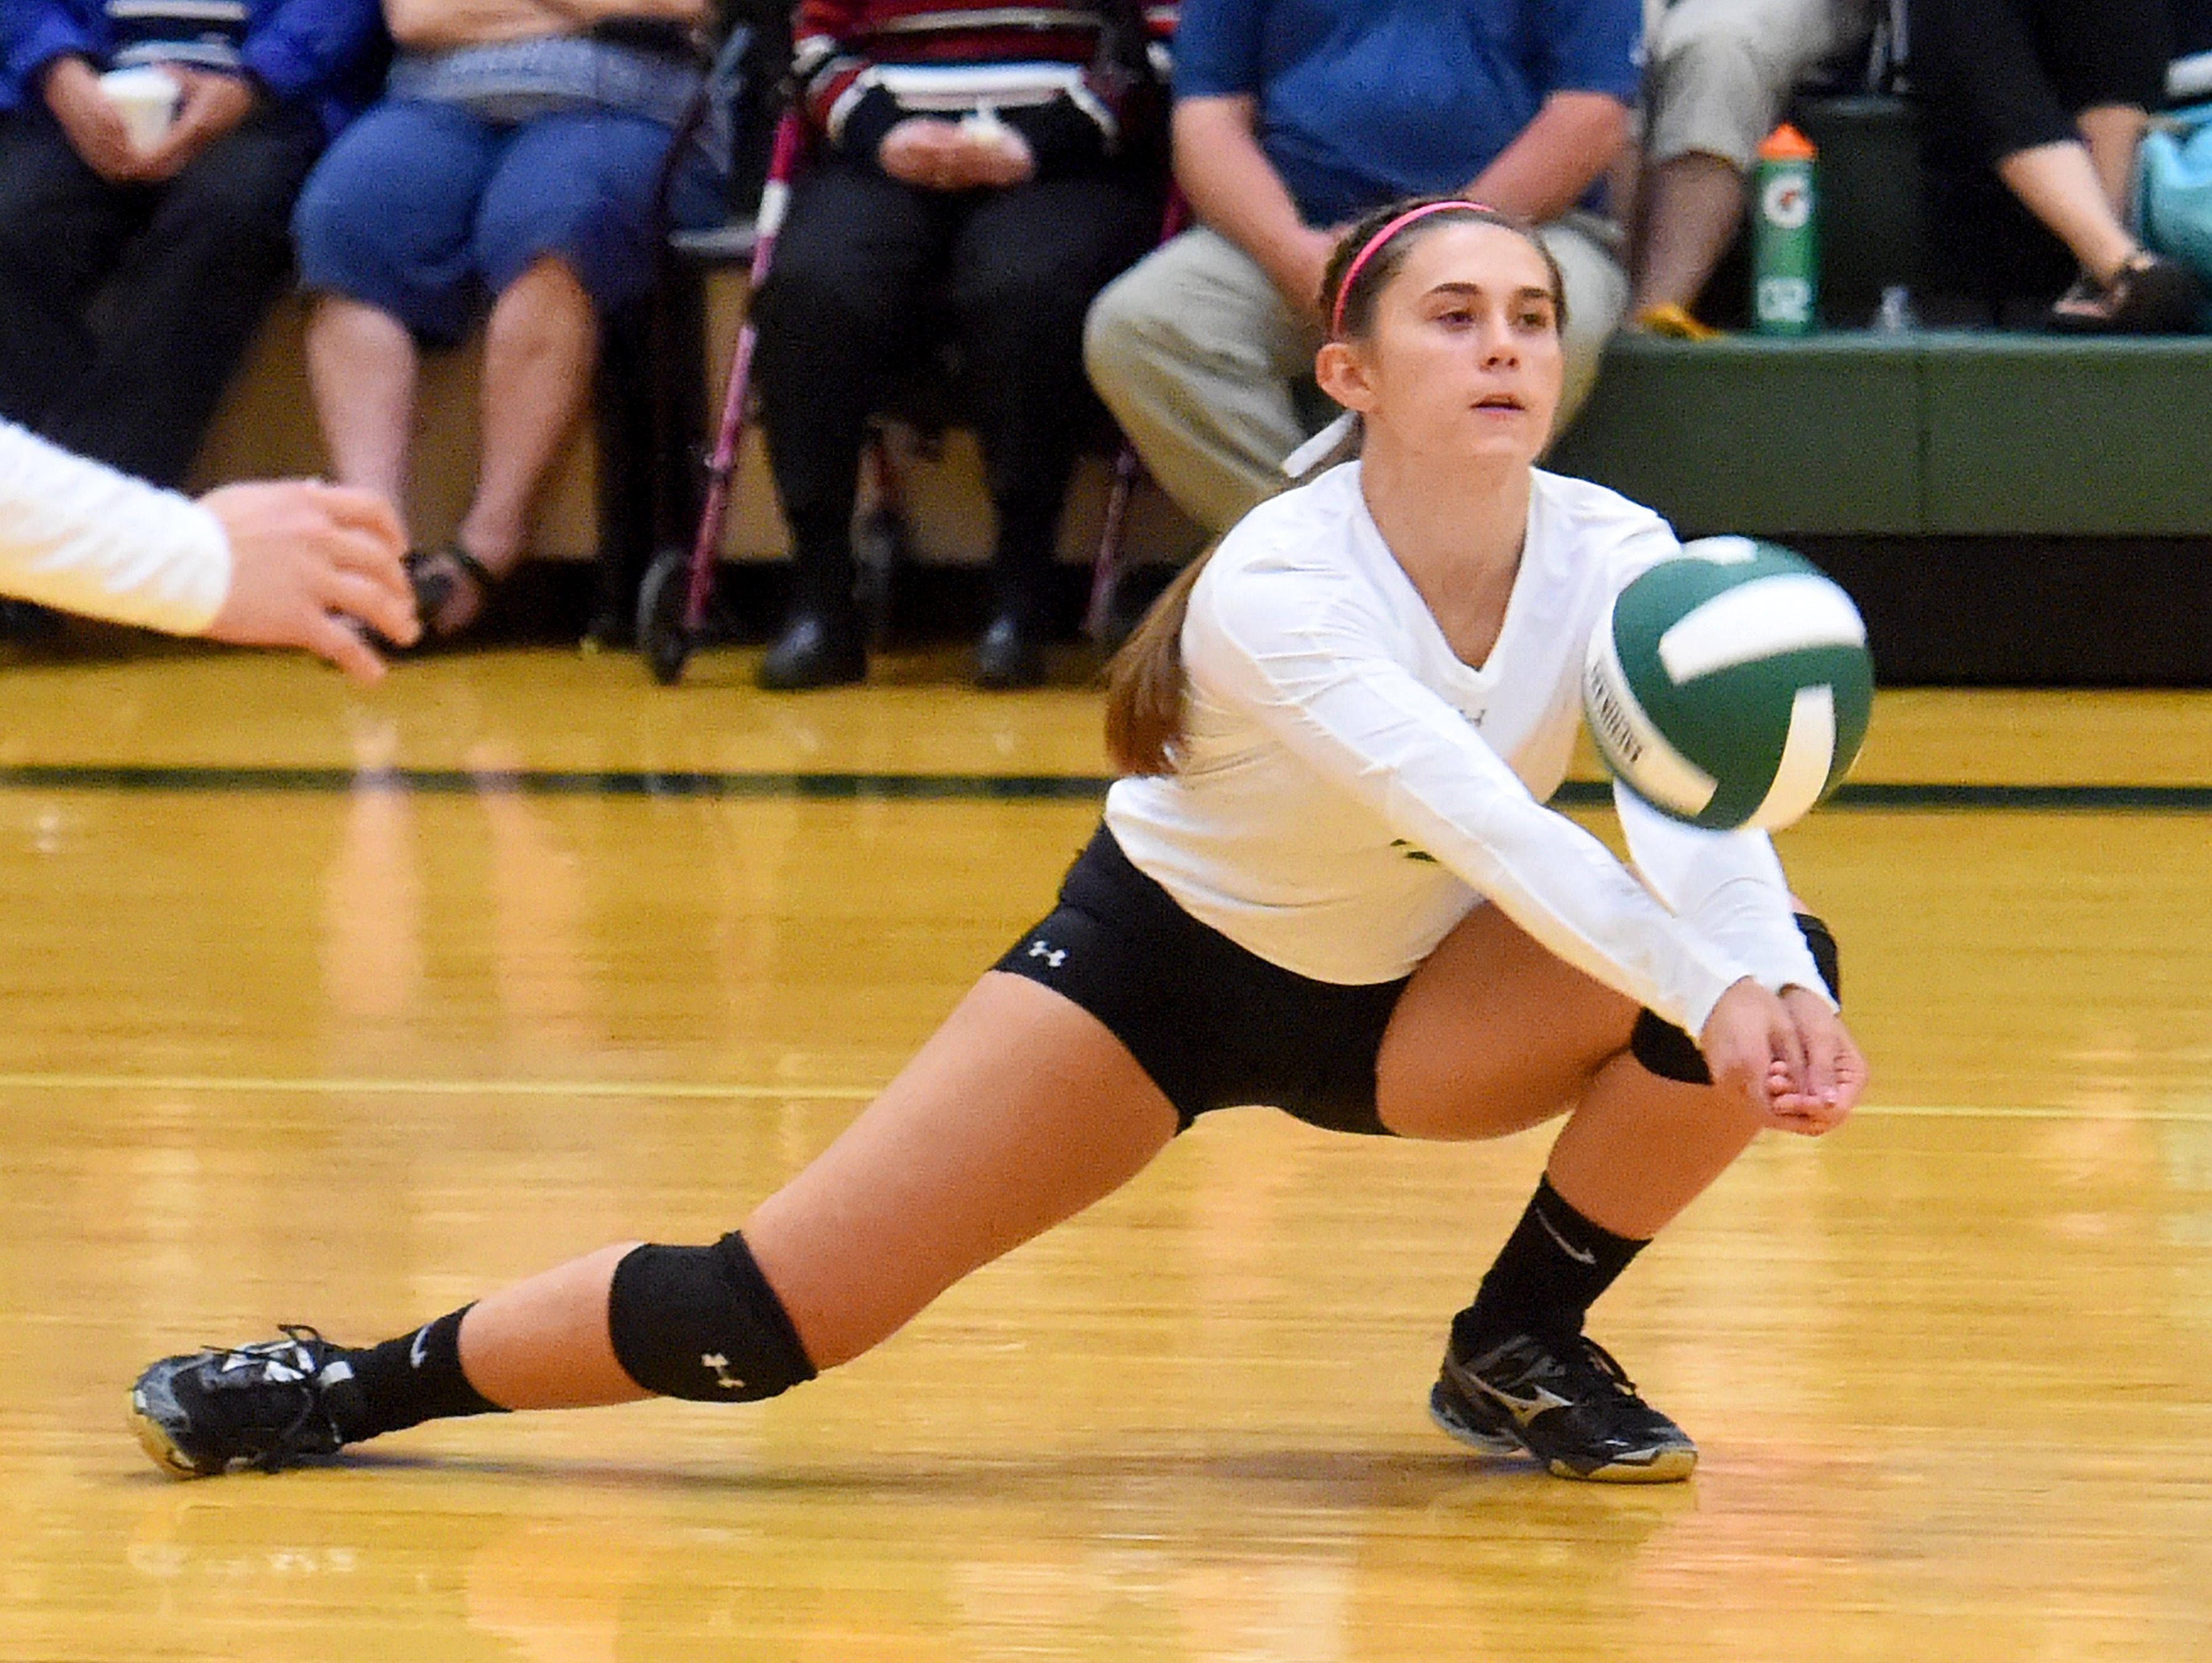 Wilson Memorial's Sam Kershner goes low to bump the ball during a volleyball match played in Fishersville on Thursday, Oct. 20, 2016.